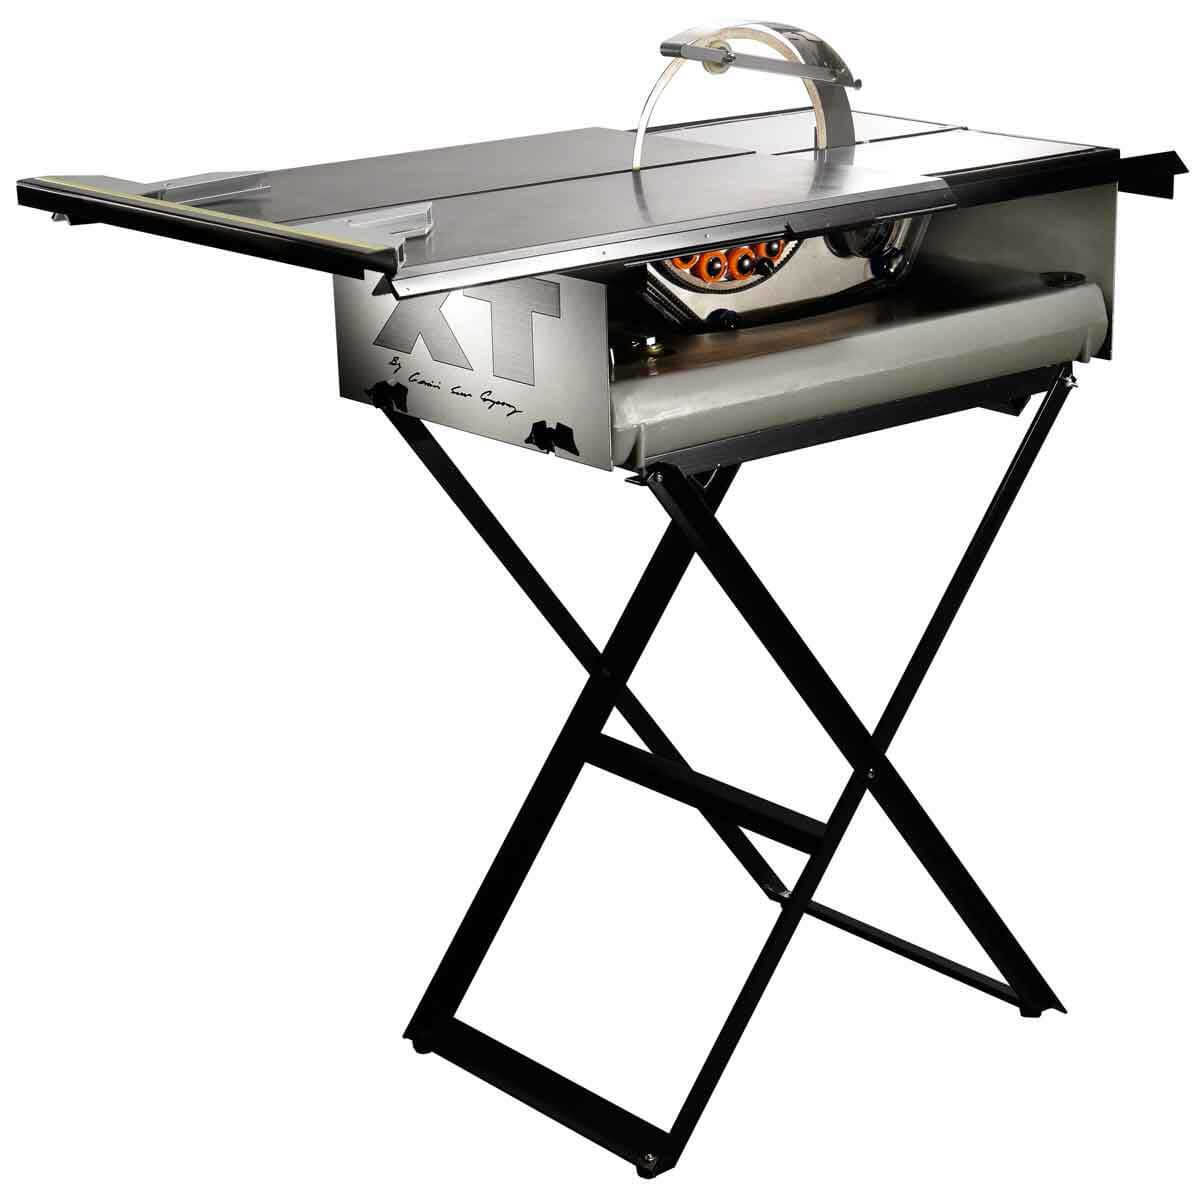 Gemini Revolution XT Tile Saw Kit with slide tray and stand